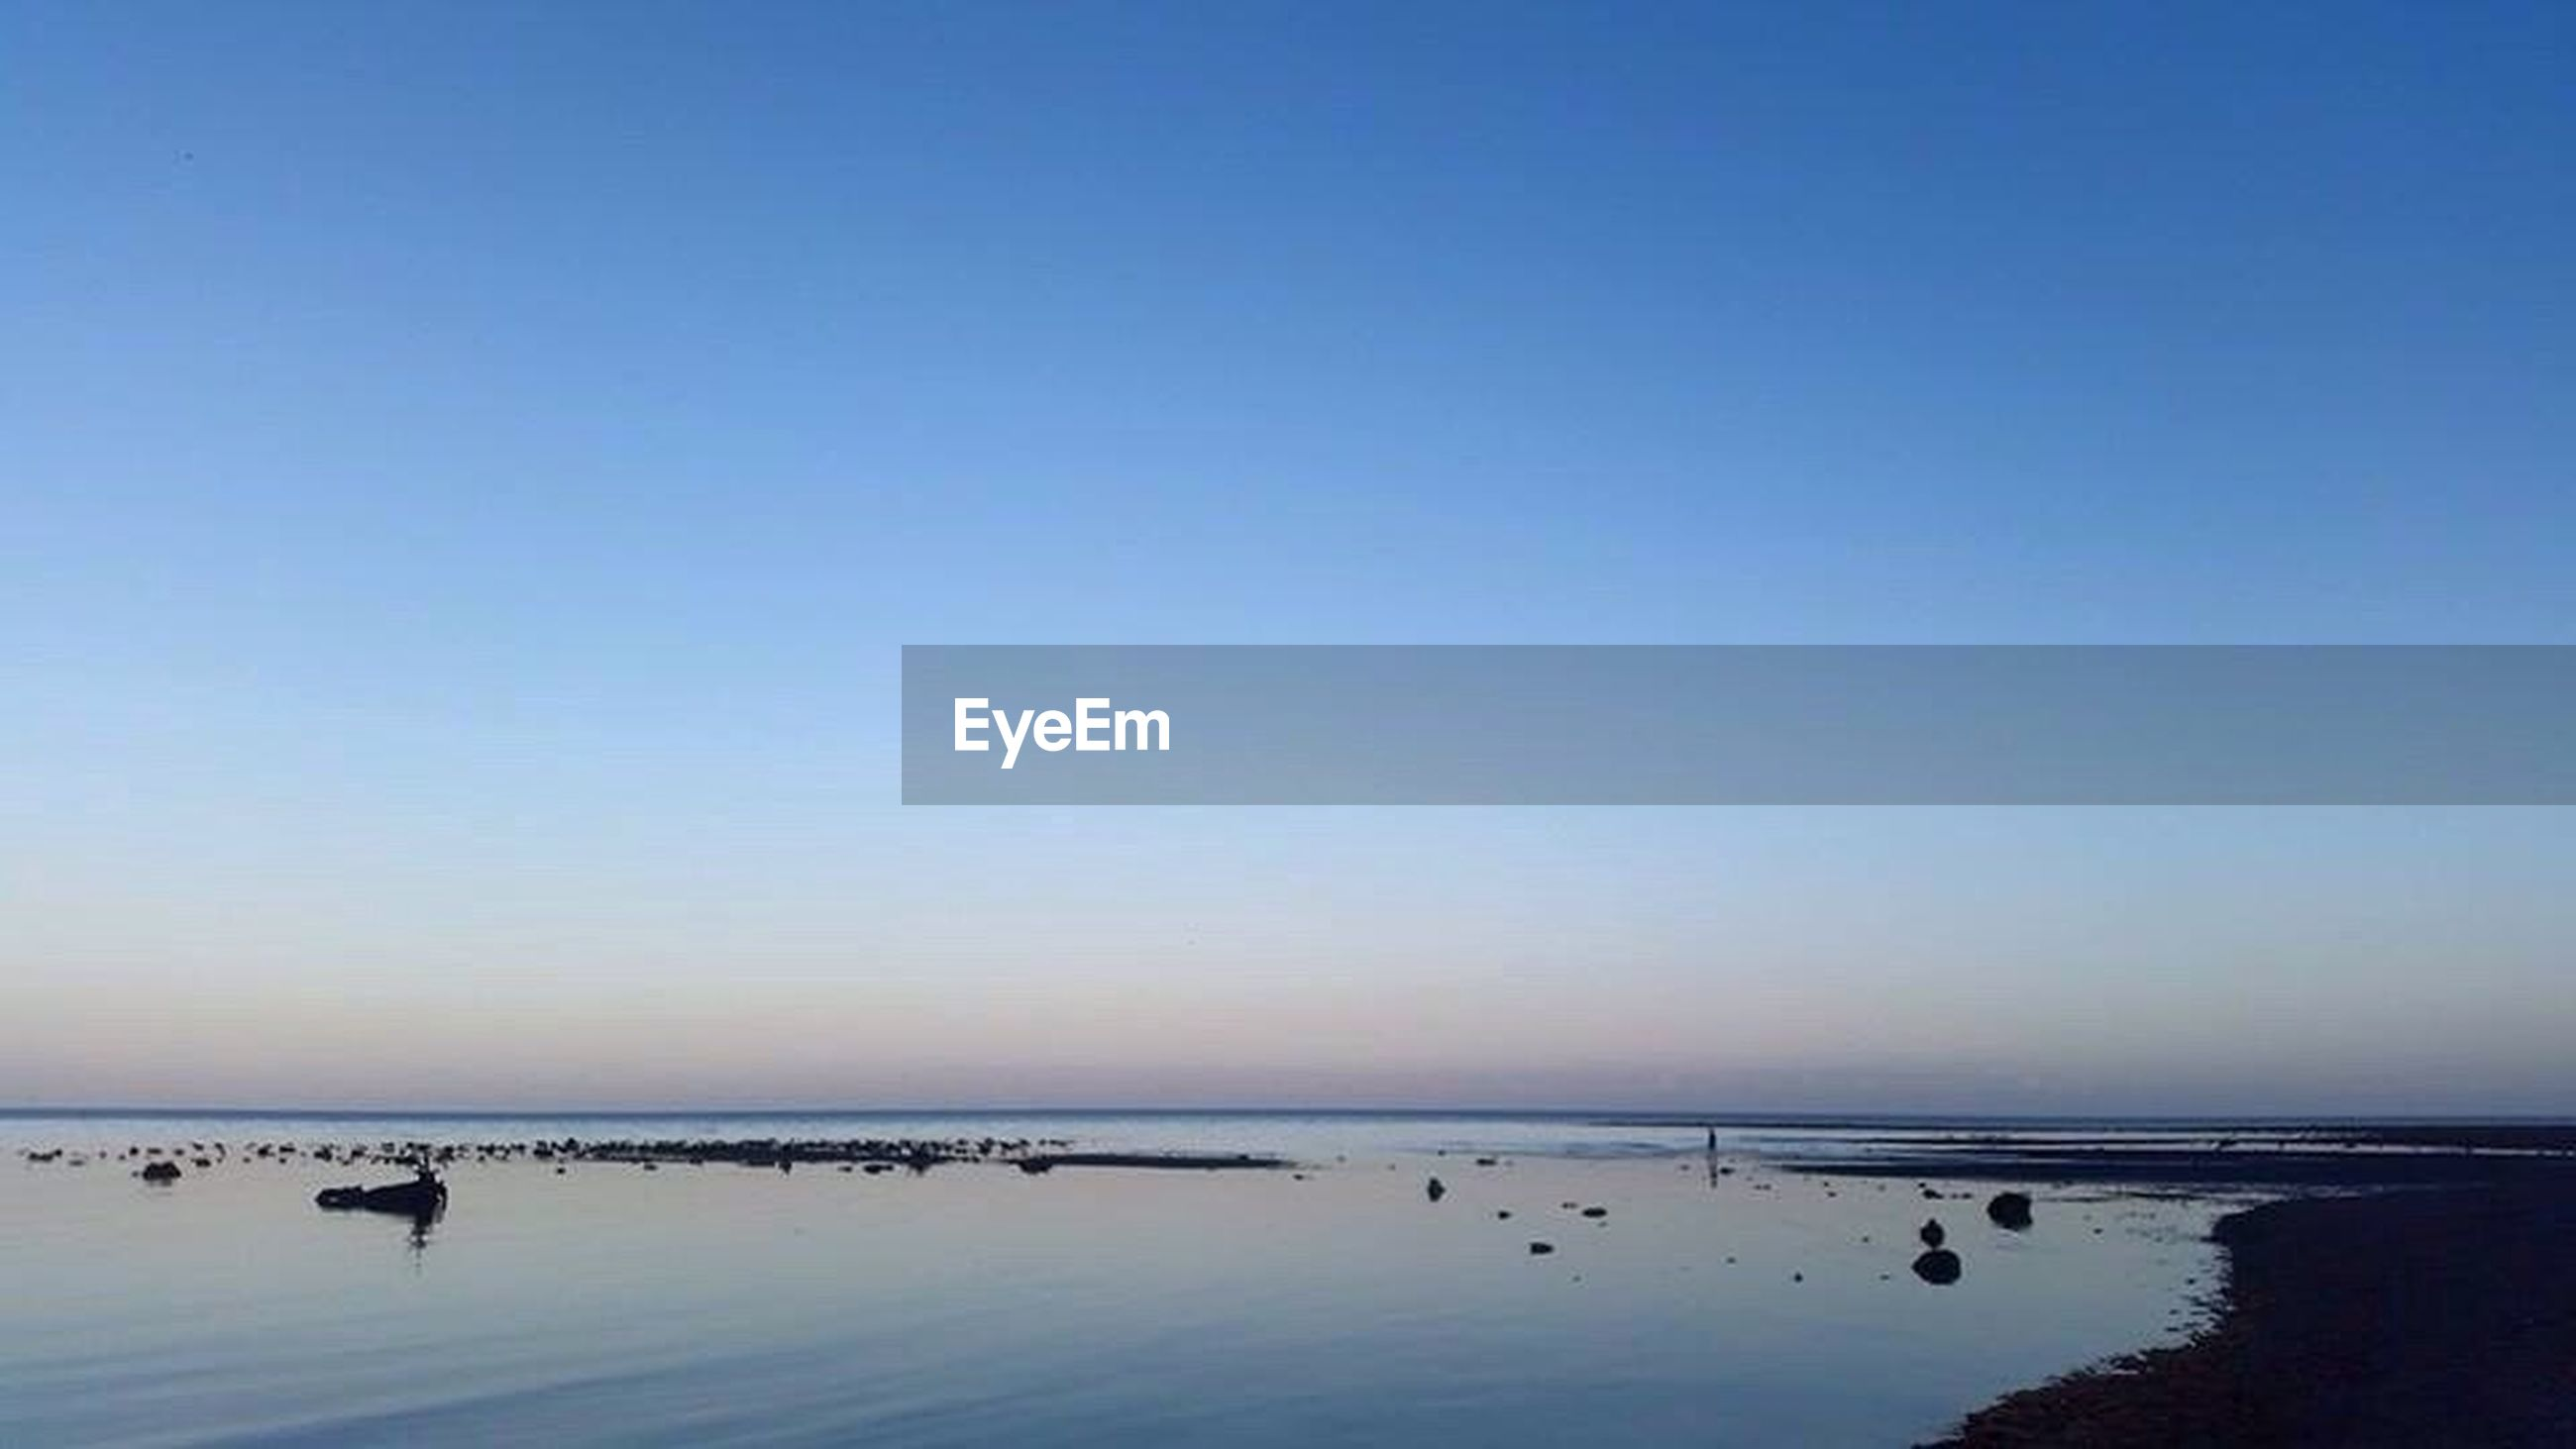 water, clear sky, sea, horizon over water, tranquil scene, tranquility, scenics, beauty in nature, blue, nature, idyllic, calm, outdoors, sky, ocean, remote, non-urban scene, seascape, no people